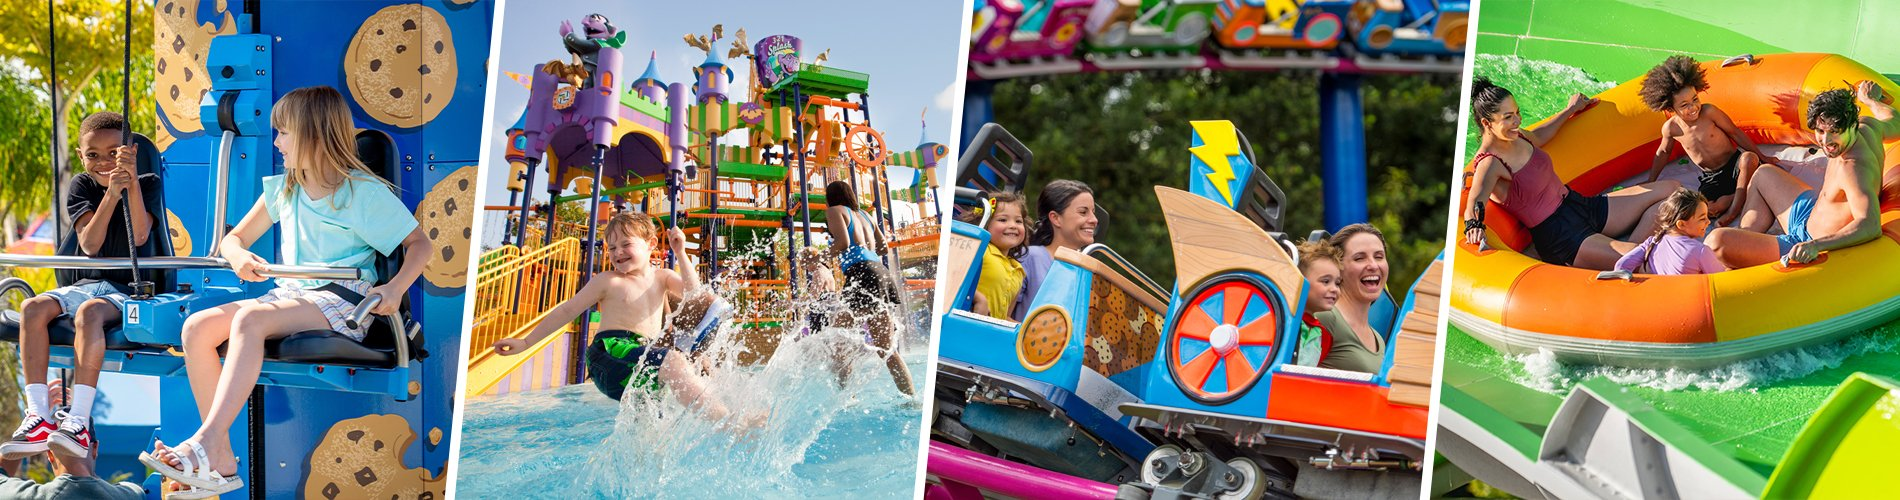 Rides and Slides at Sesame Place San Diego